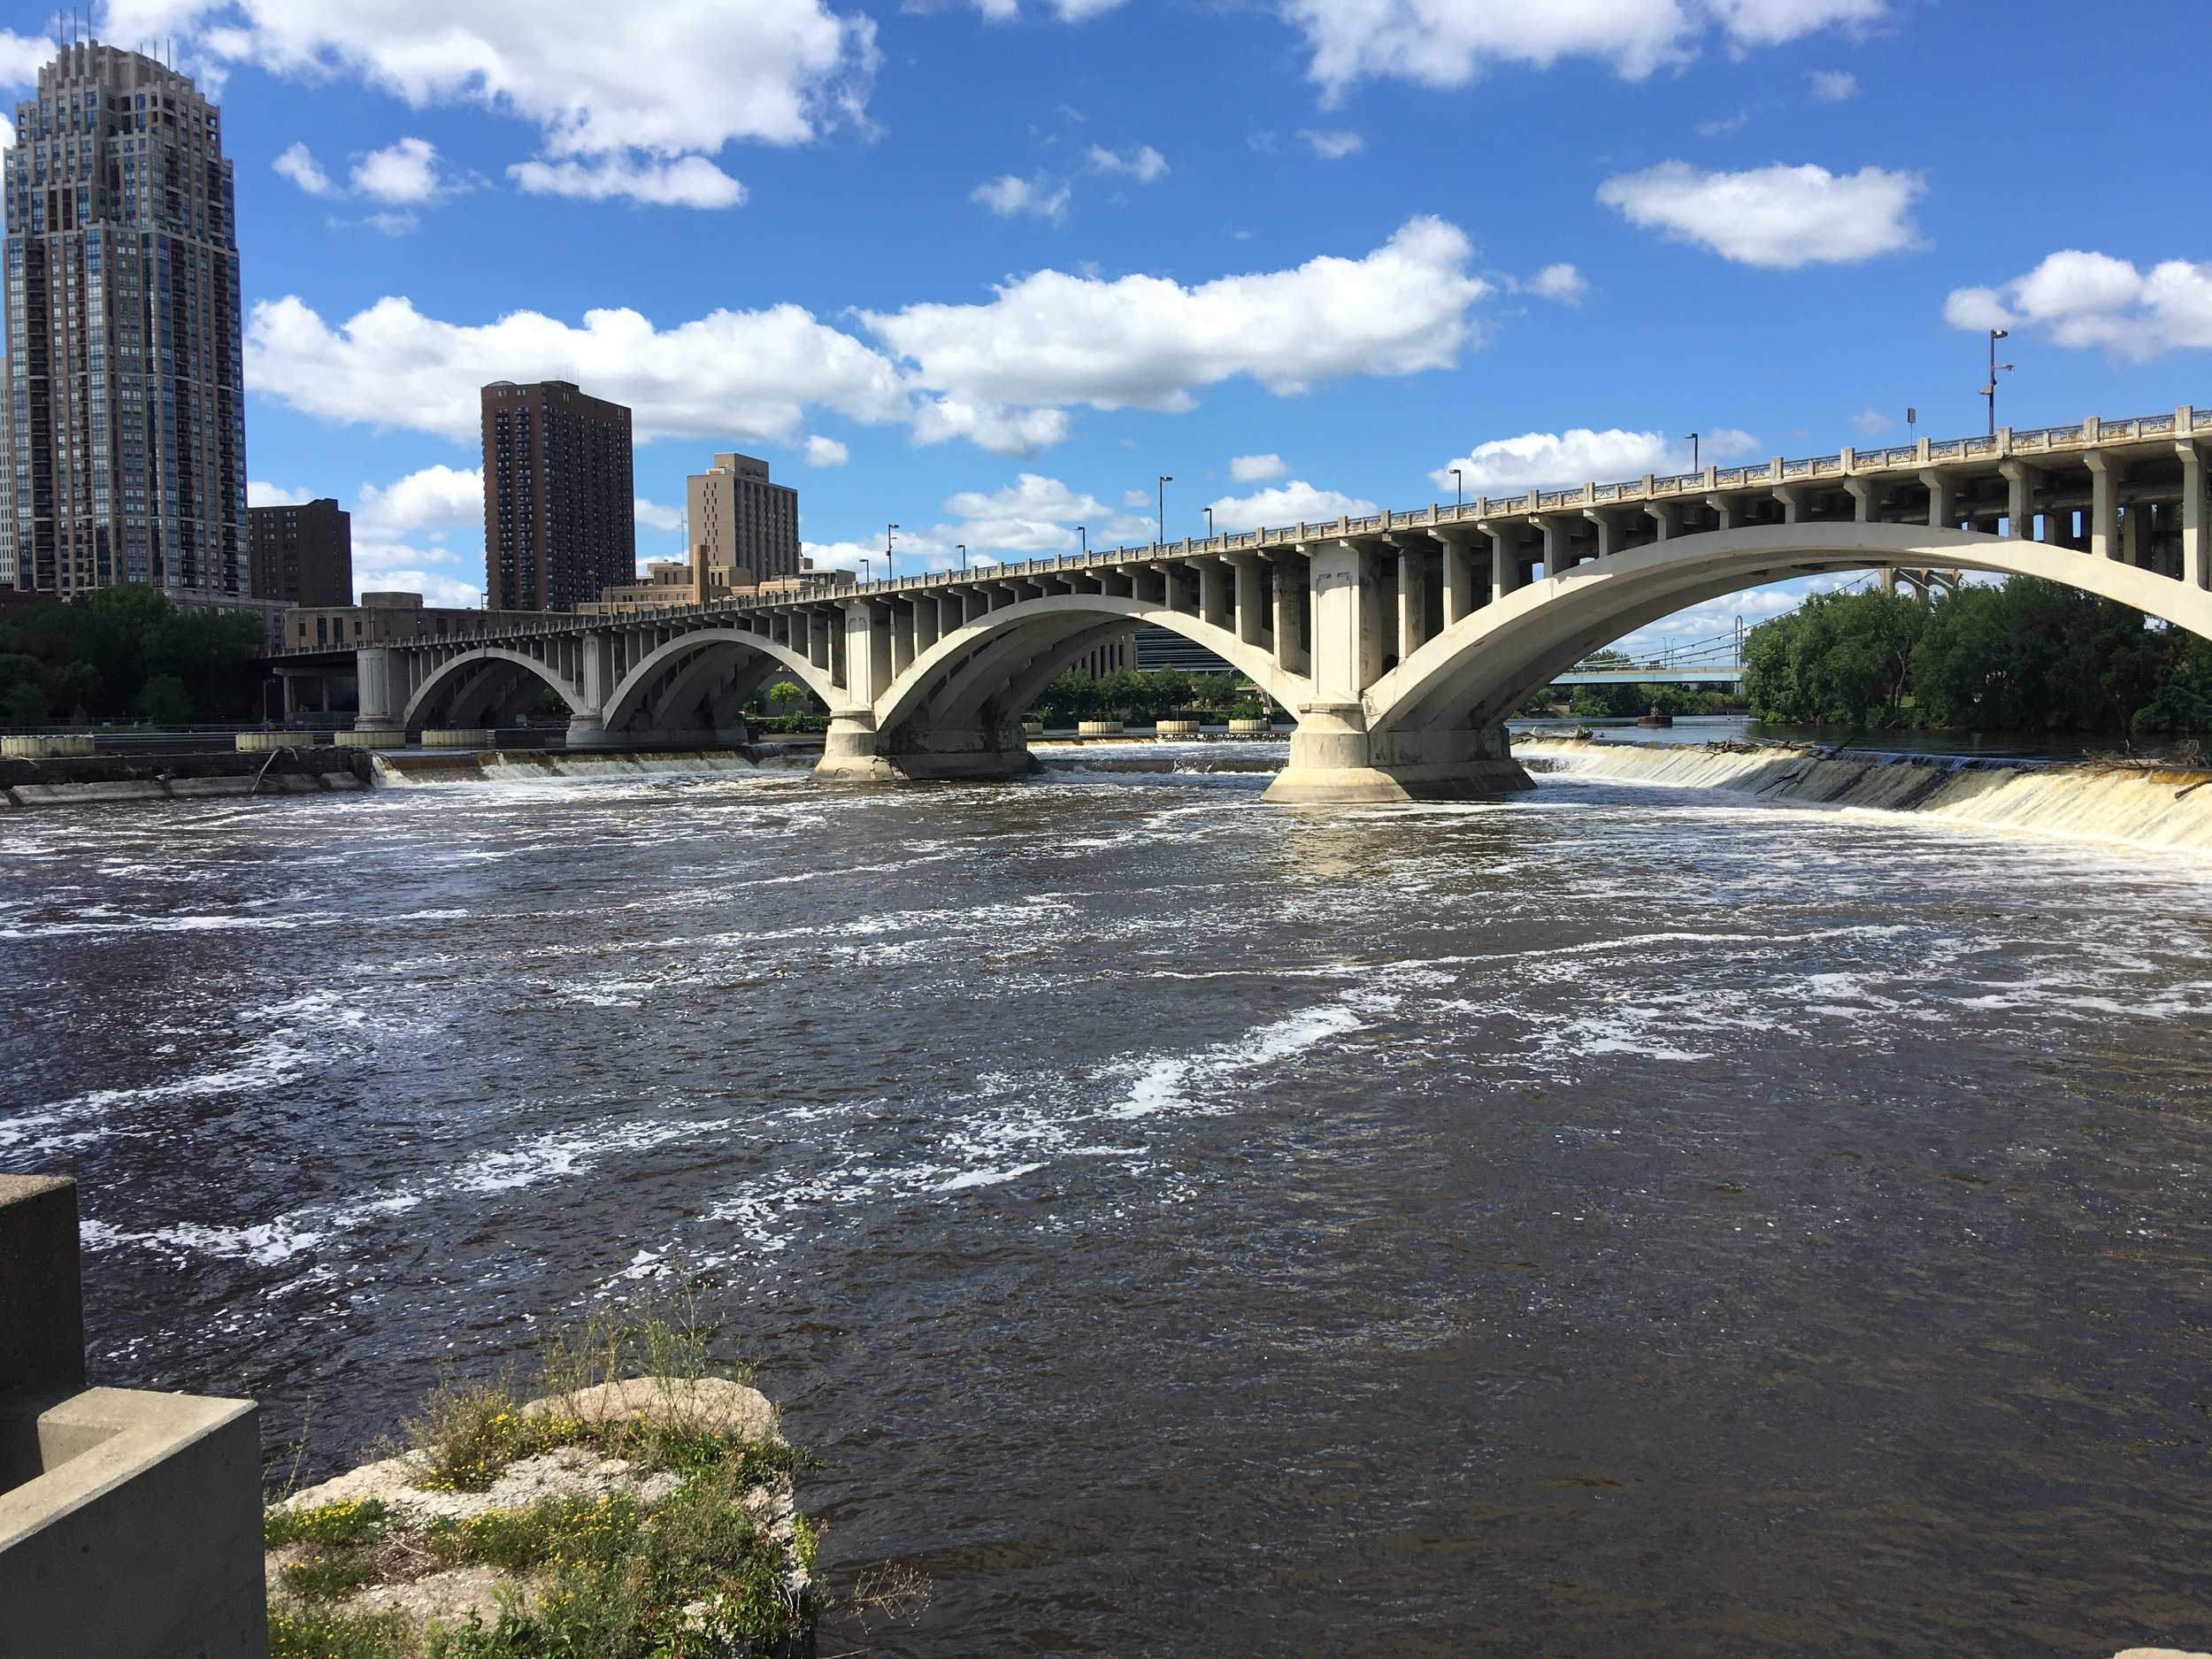 The St. Anthony Falls of the Mississippi River